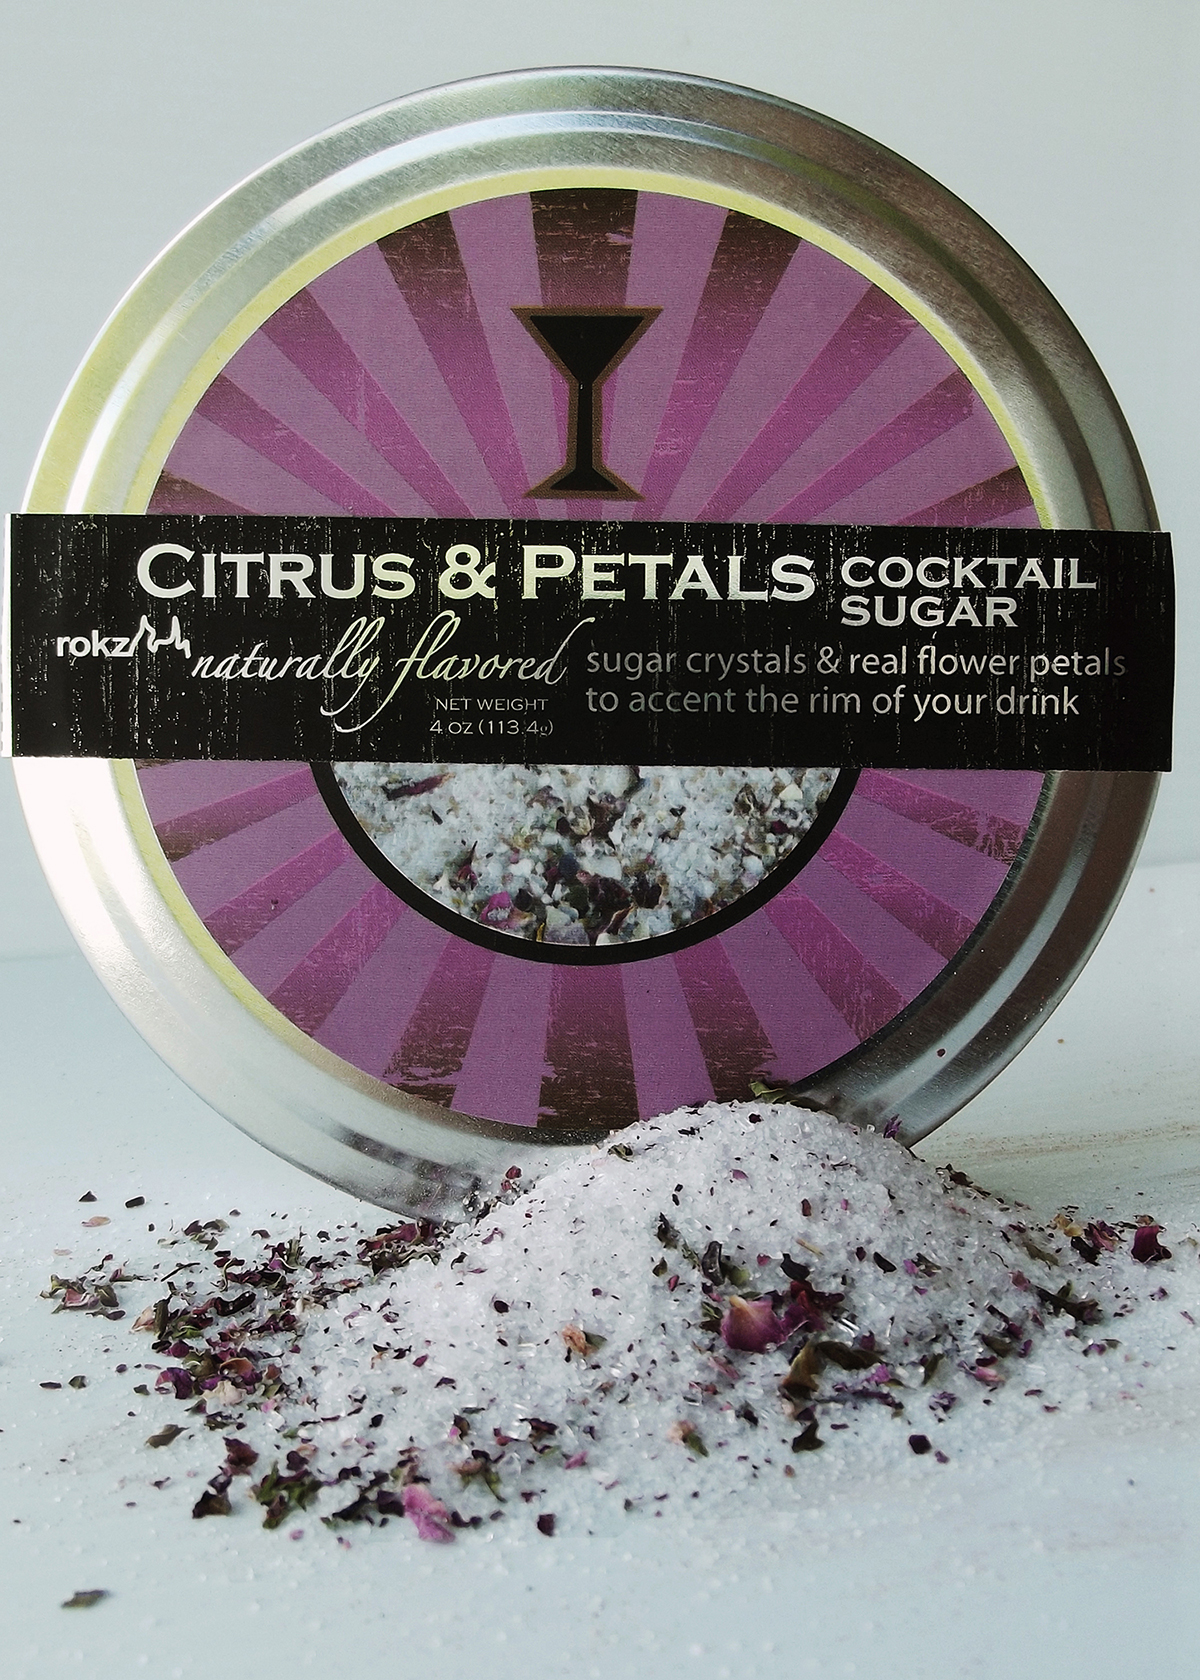 rokz Citrus Petals Infused Sugar